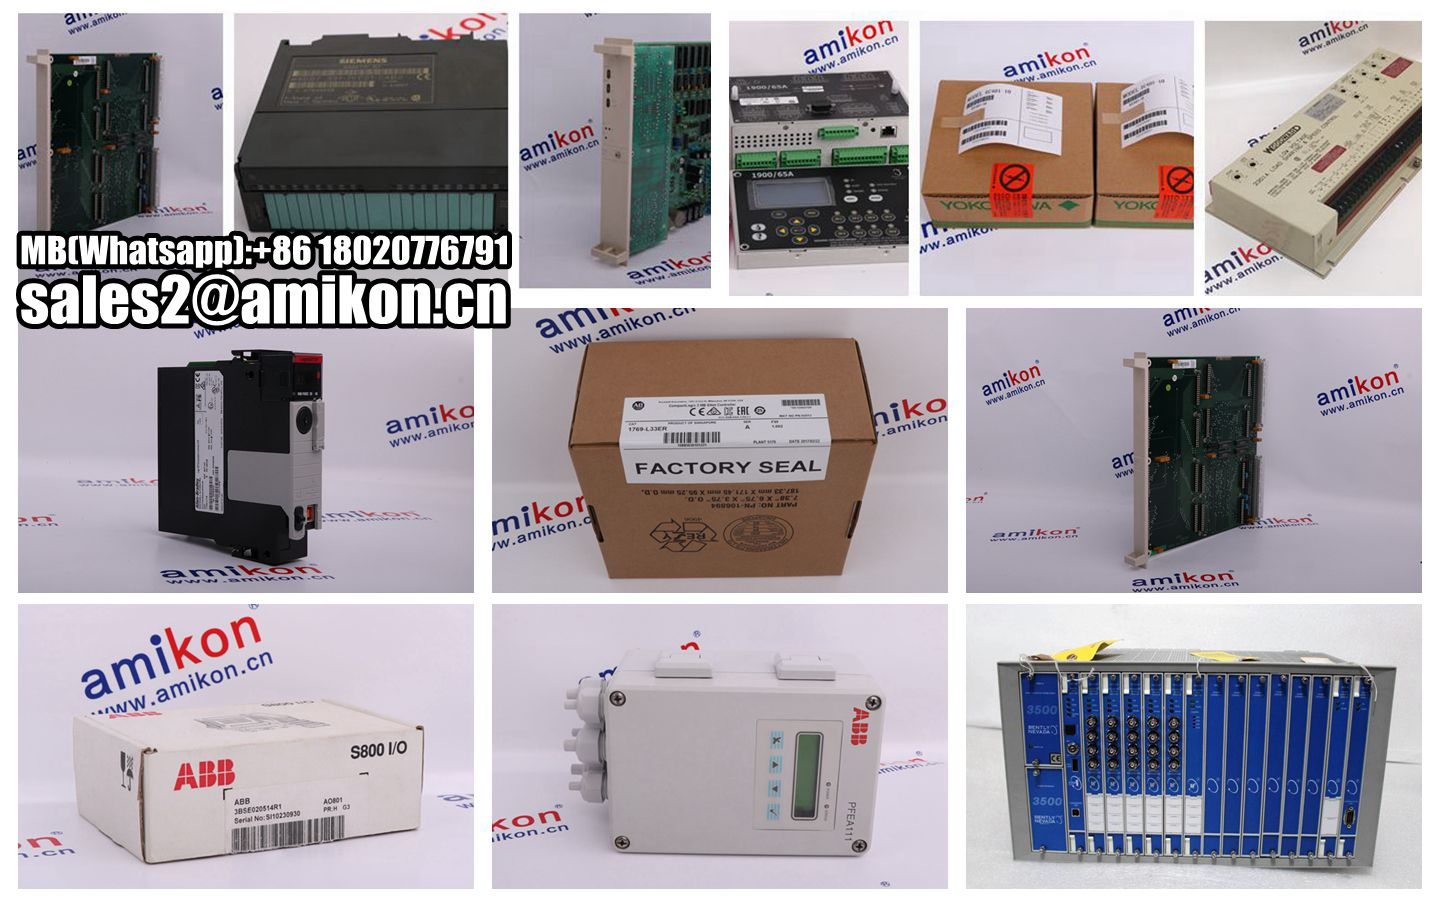 ABB DTCA721A 3EST92-481 NEW IN STOCK GREAT PRICE DISTRIBUTOR